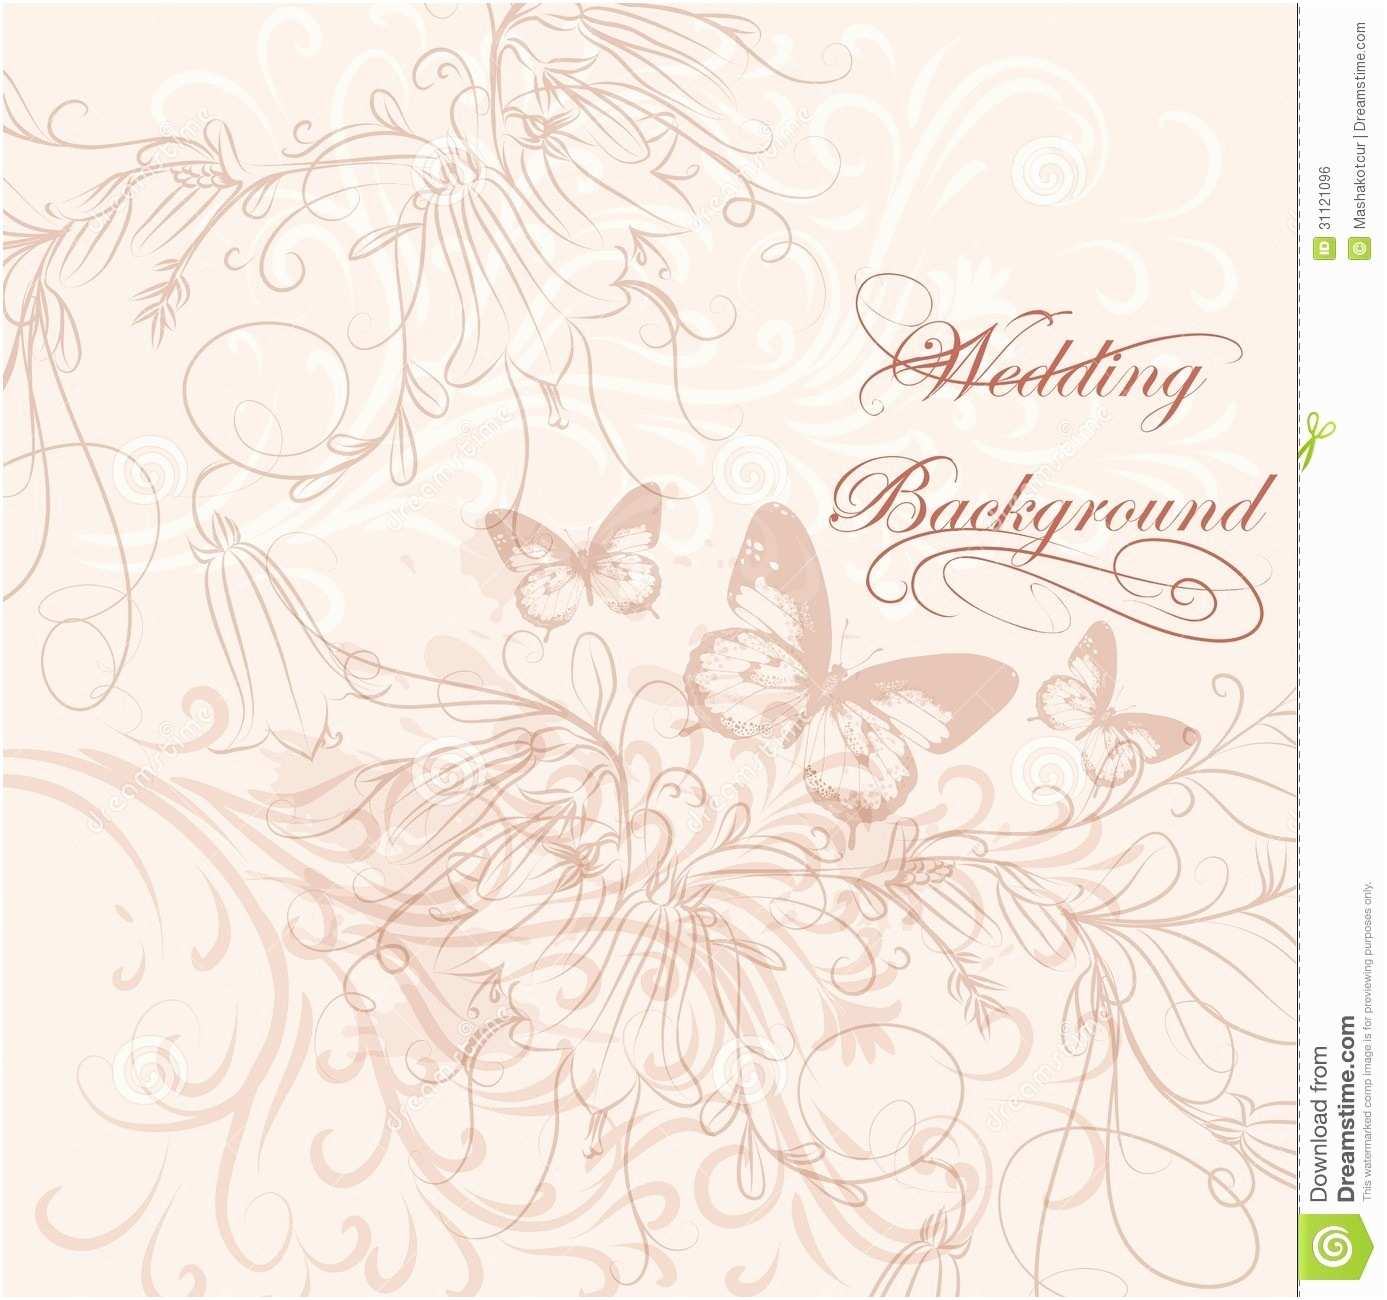 Background Images for Wedding Invitation Cards 89 Wedding Invitation Background Designs Free Download